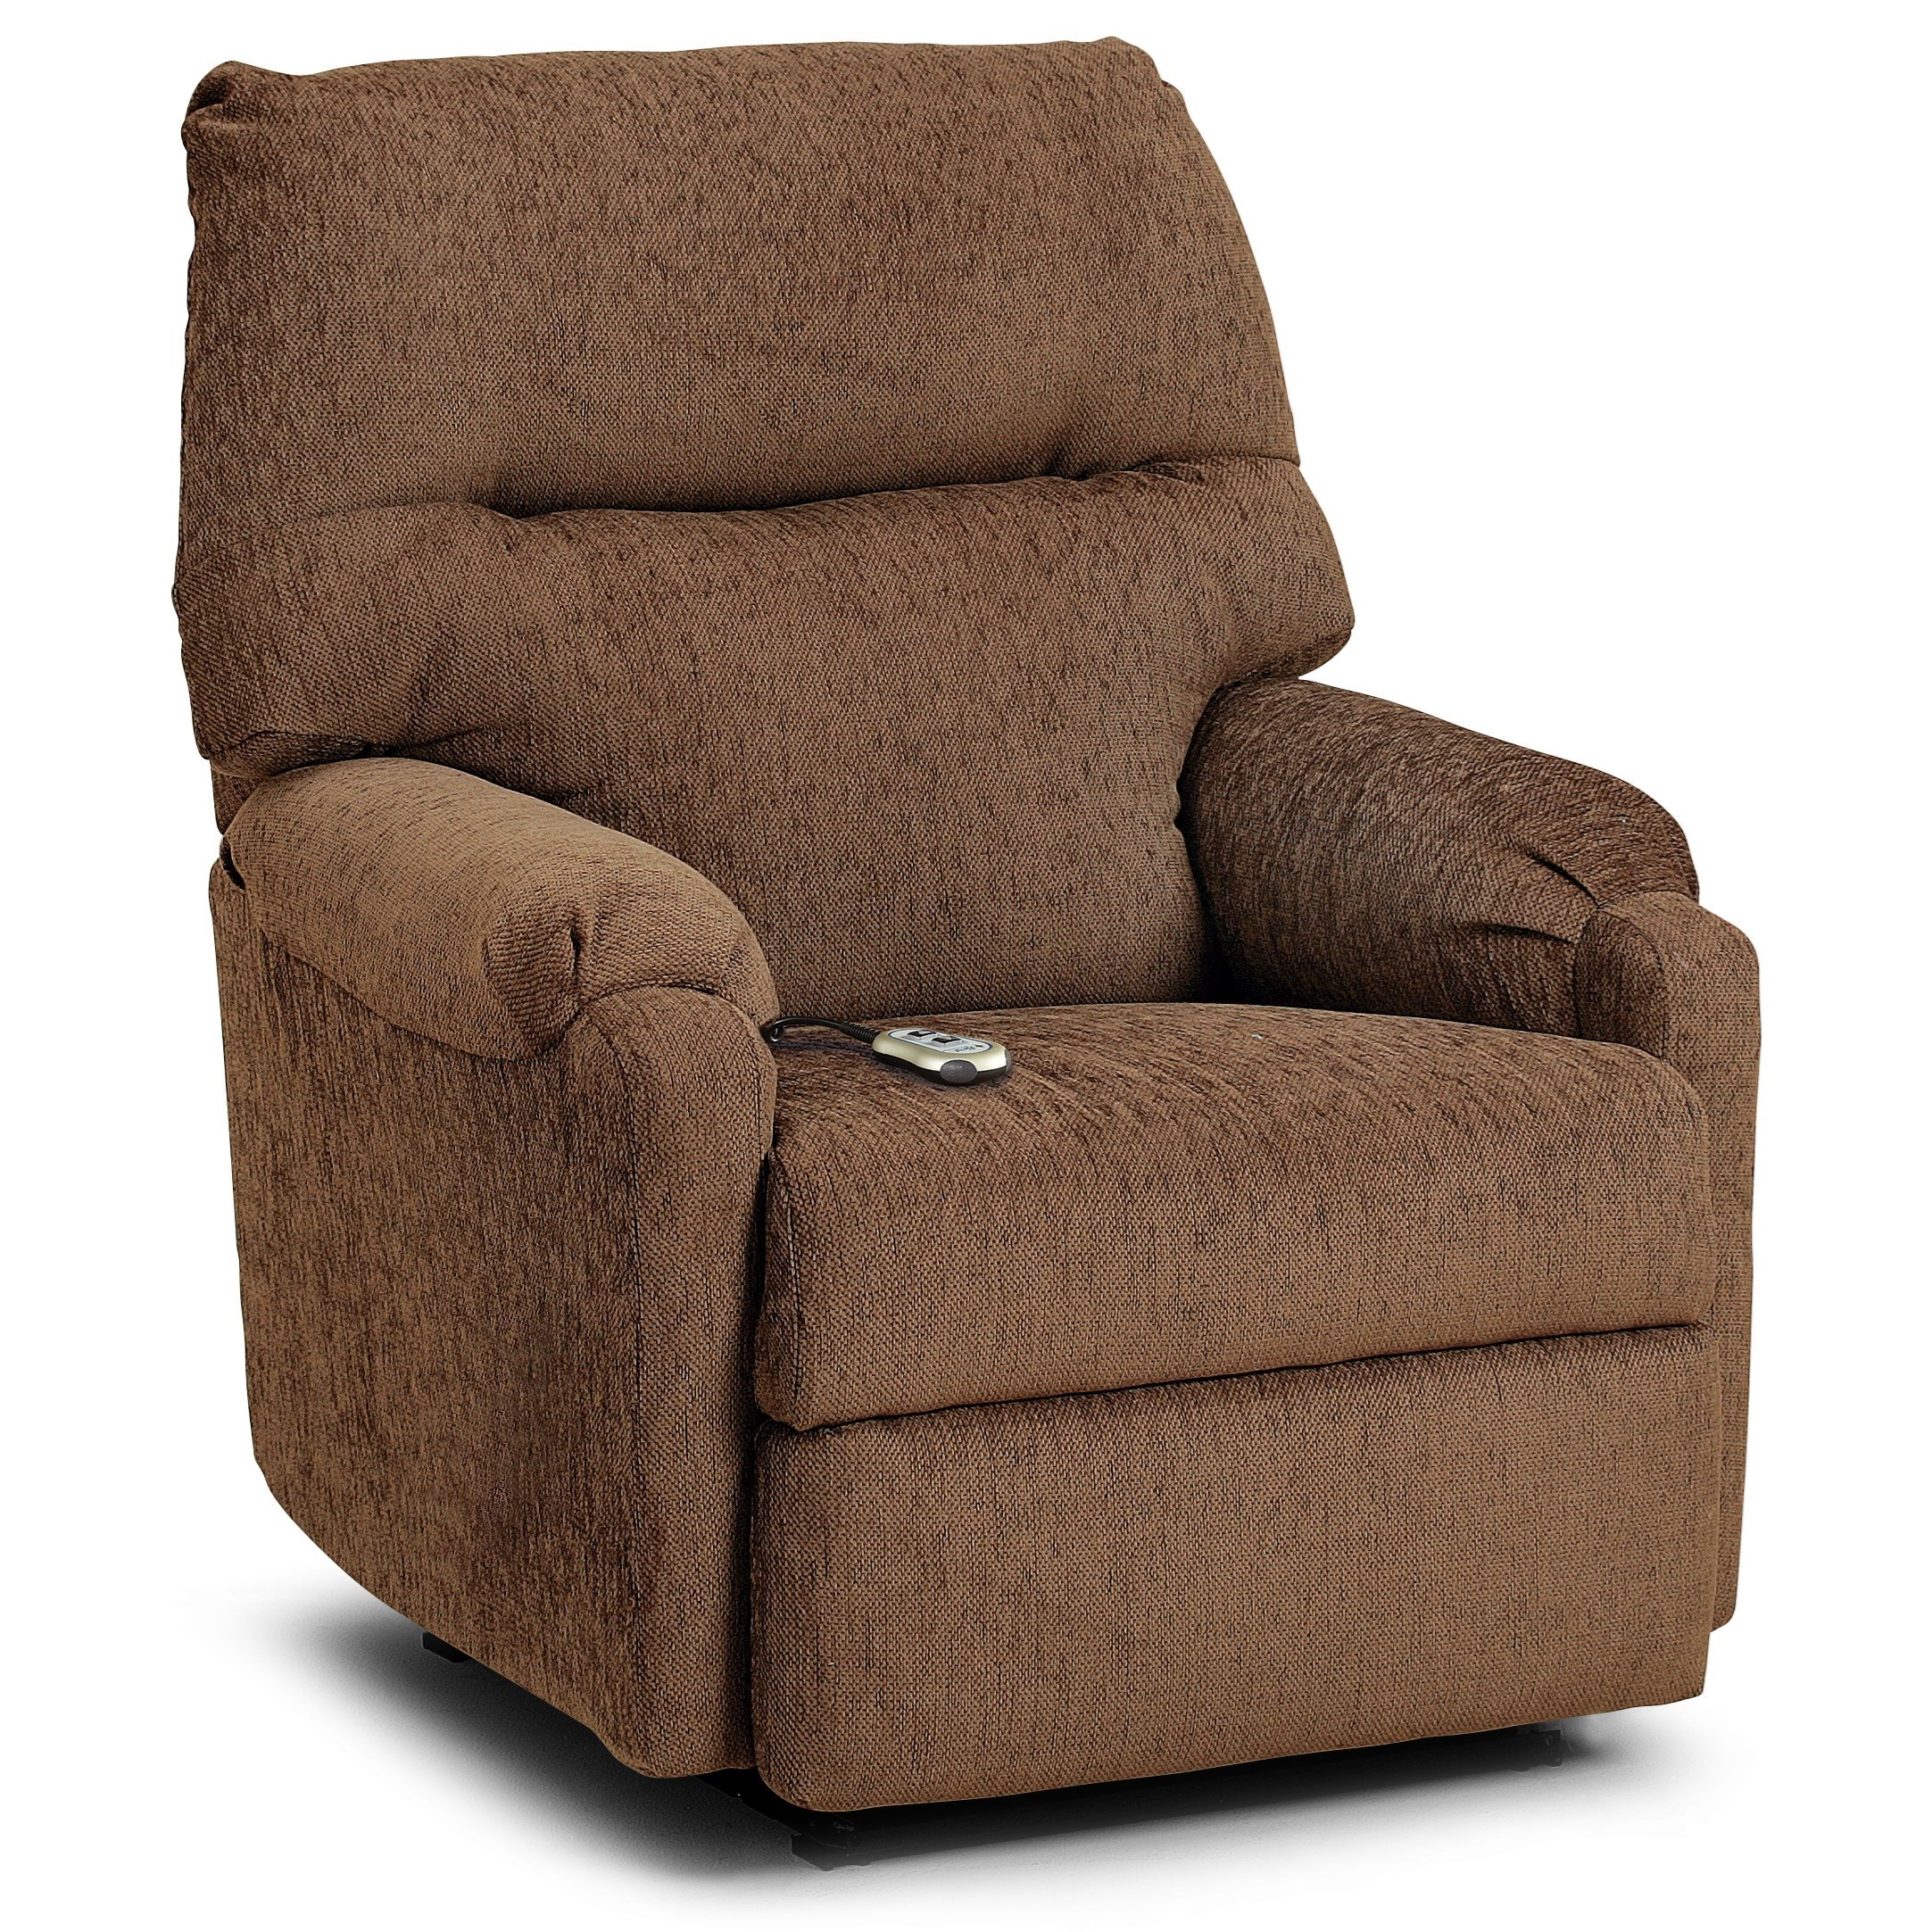 Petite Chairs Best Home Furnishings Petite Recliners Jojo Power Lift